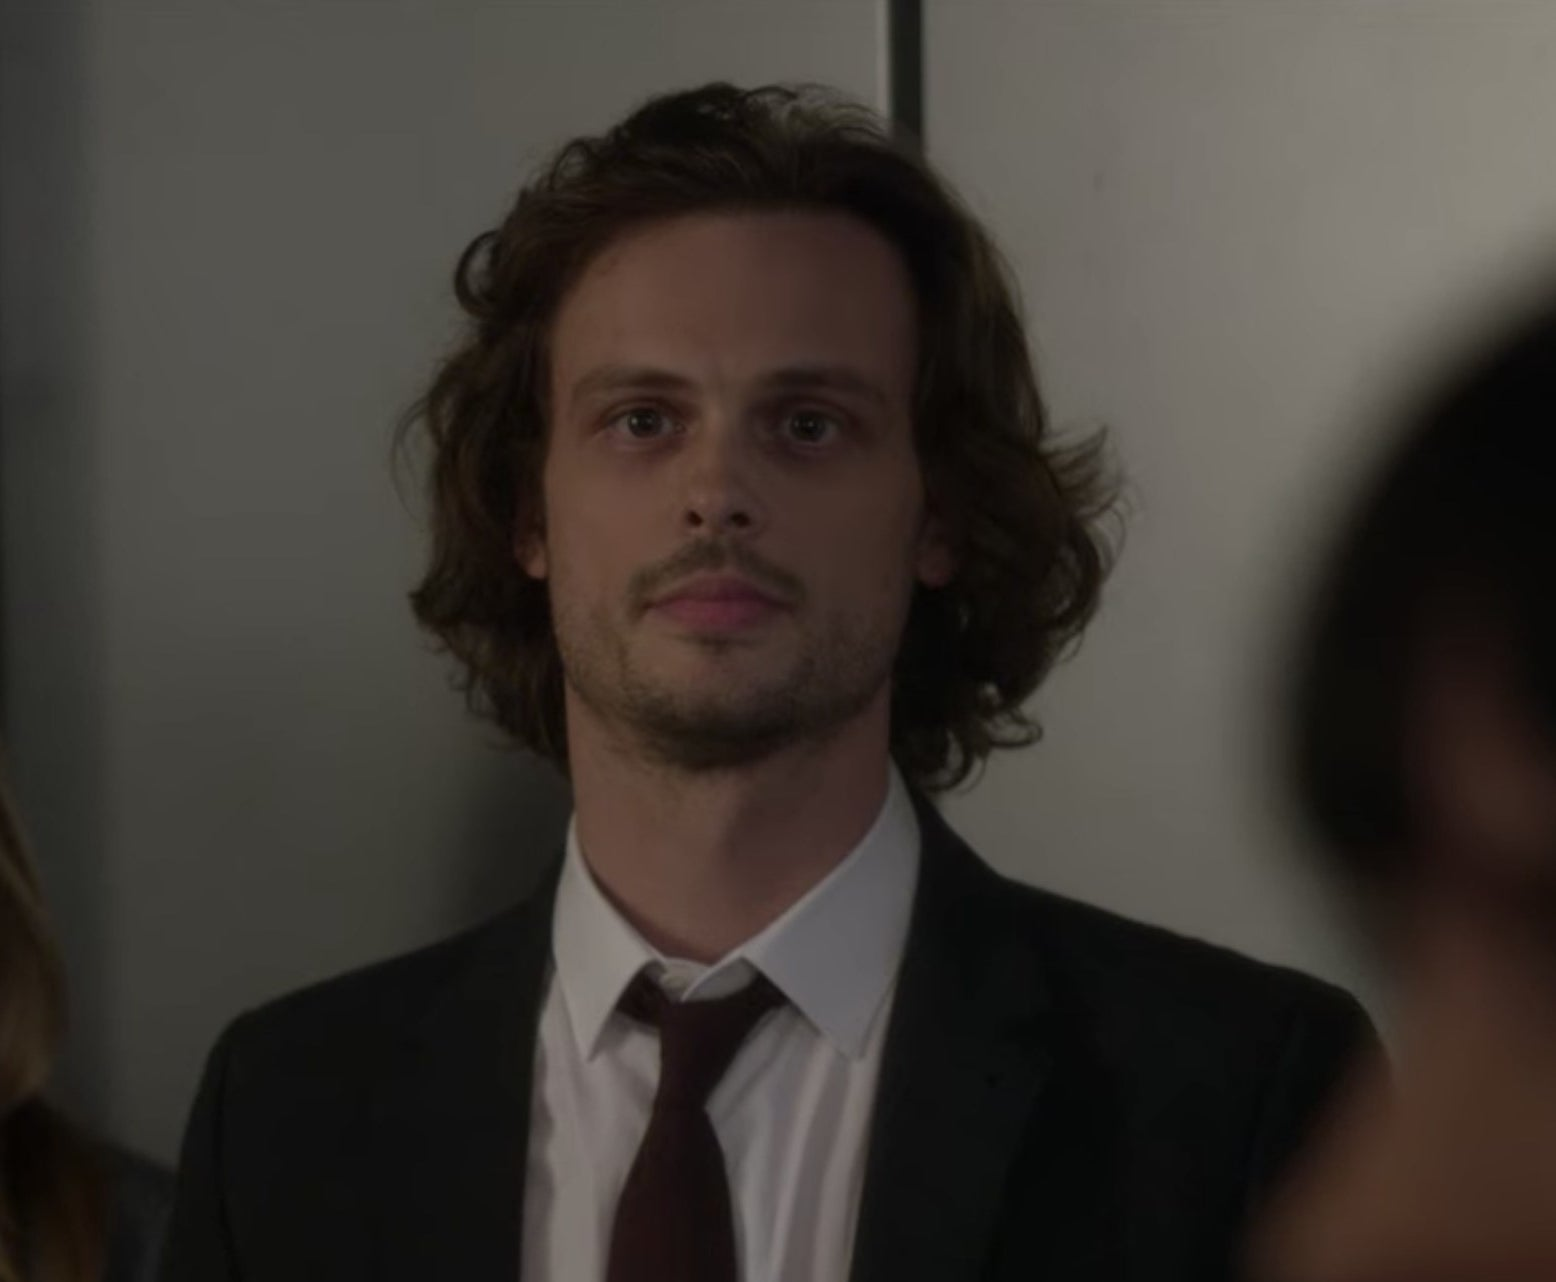 Spencer Reid from Criminal Minds standing next to a person